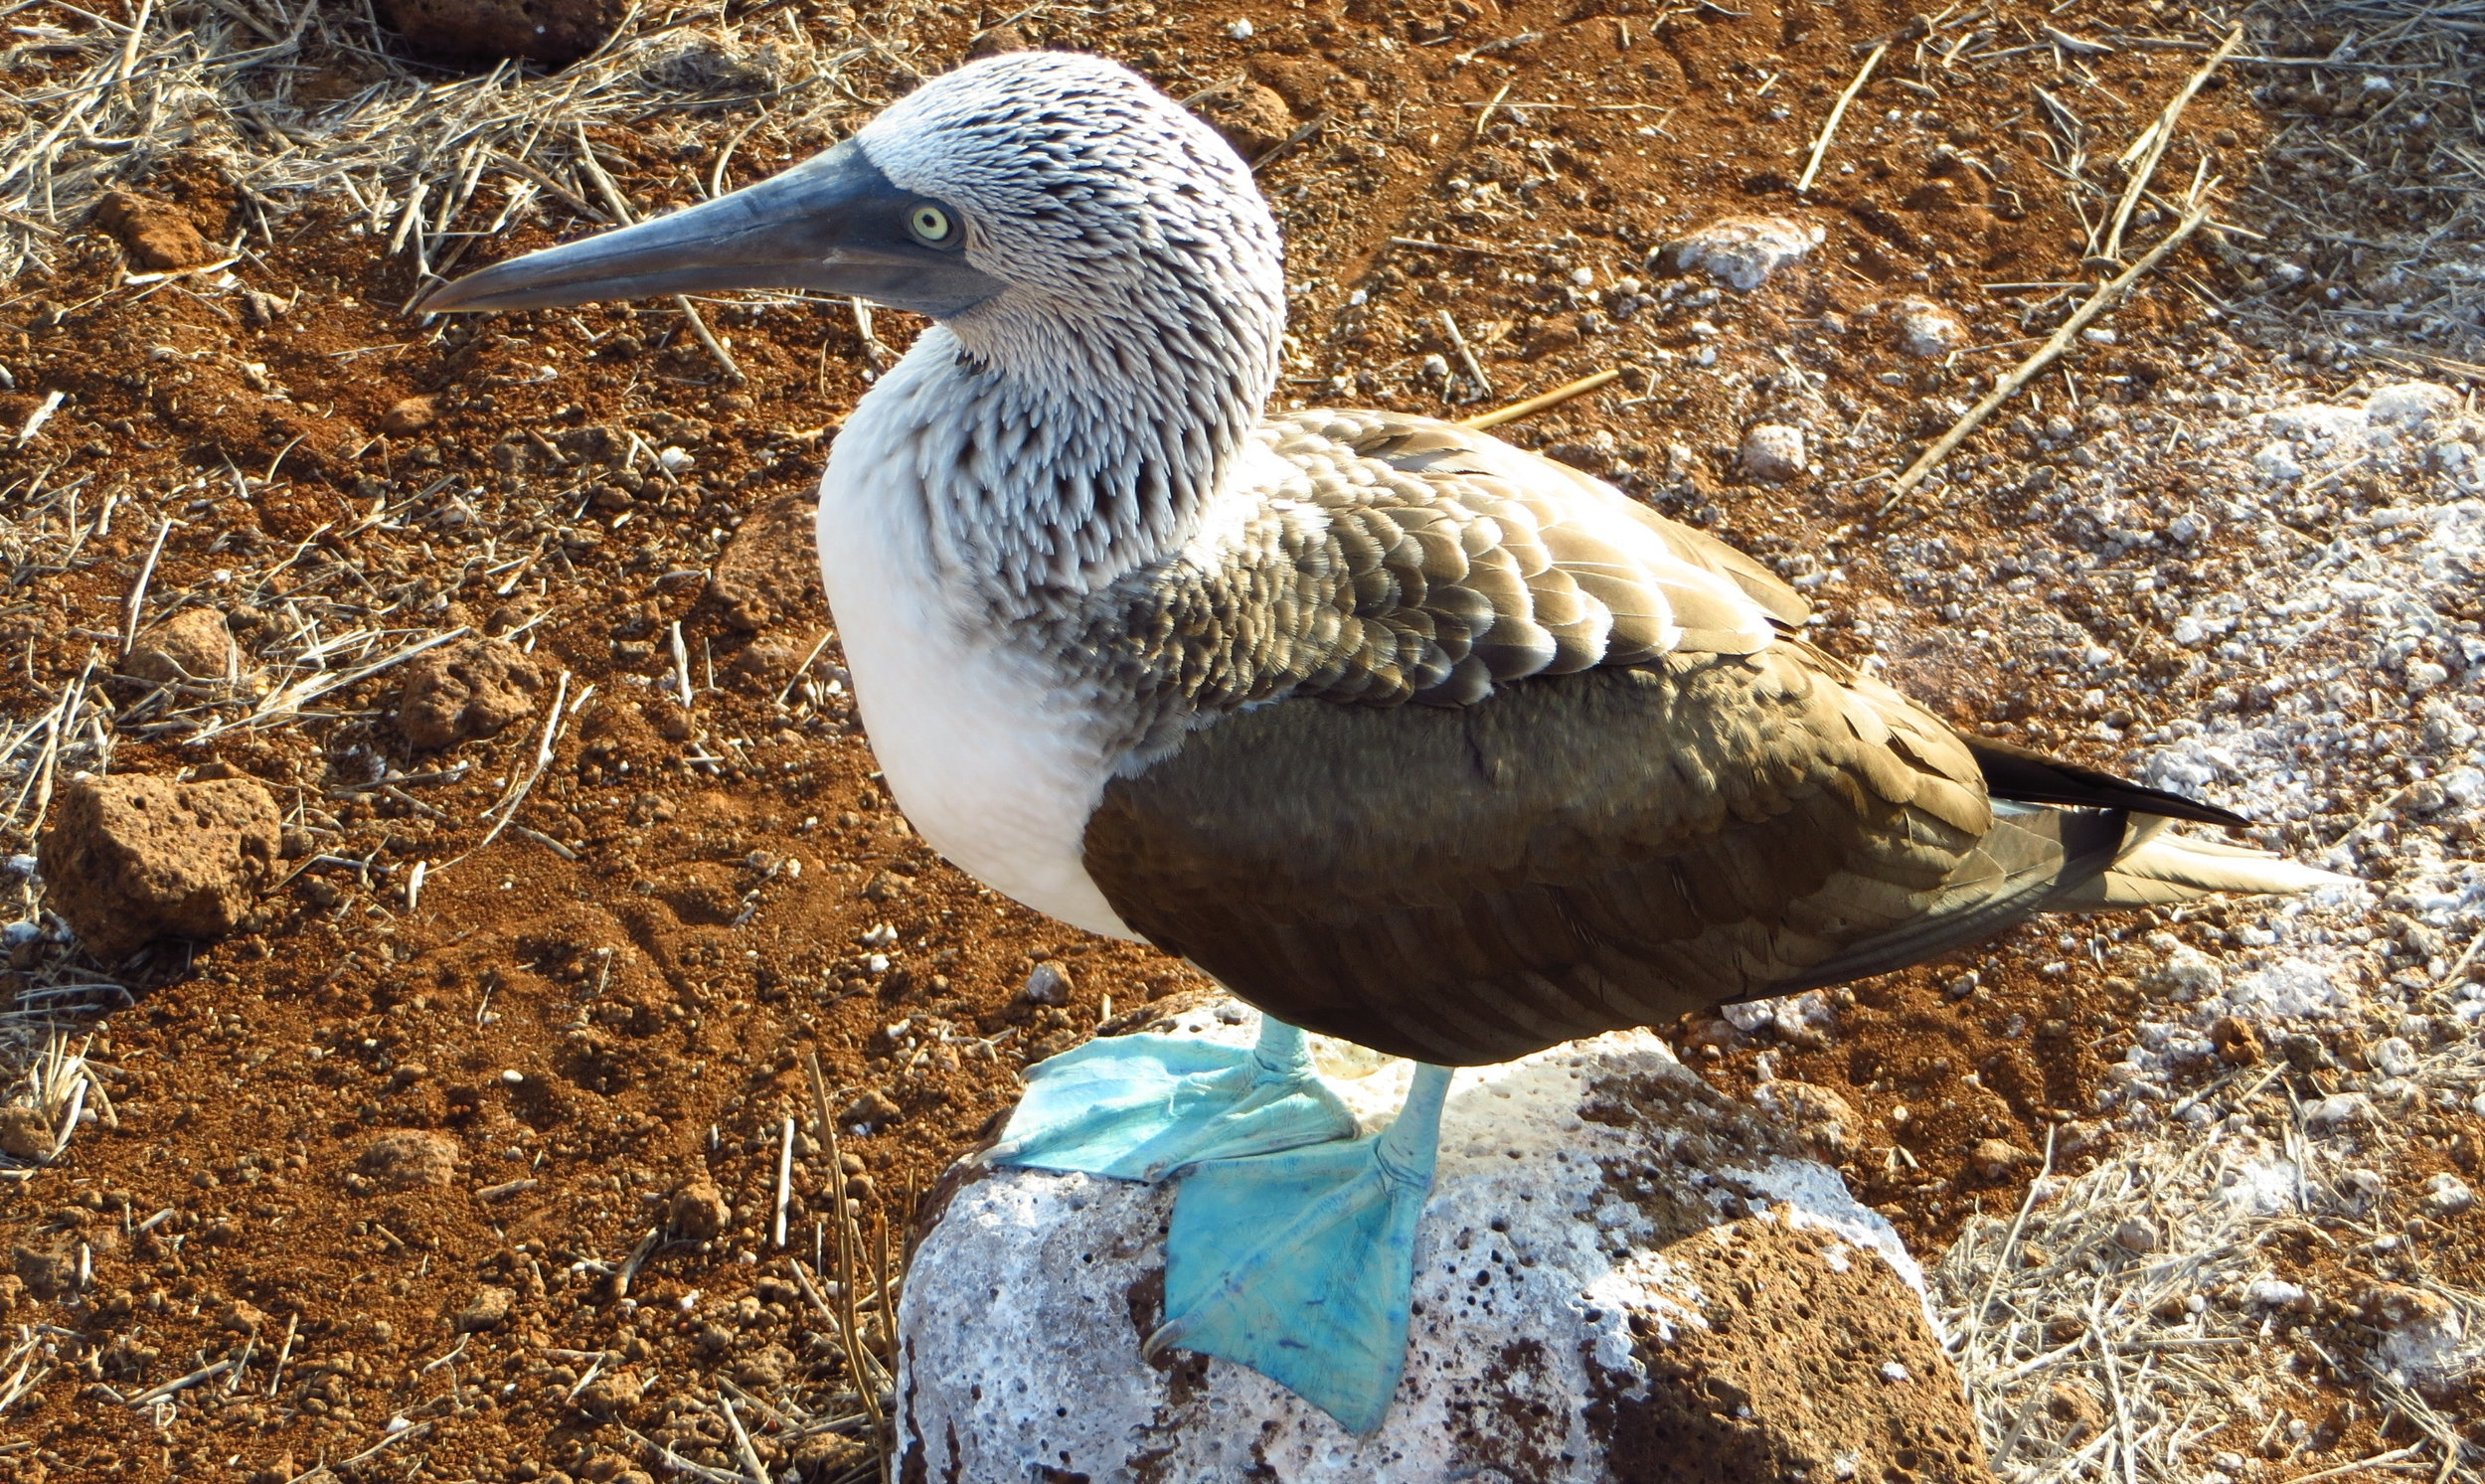 A blue booby in the Galapagos islands